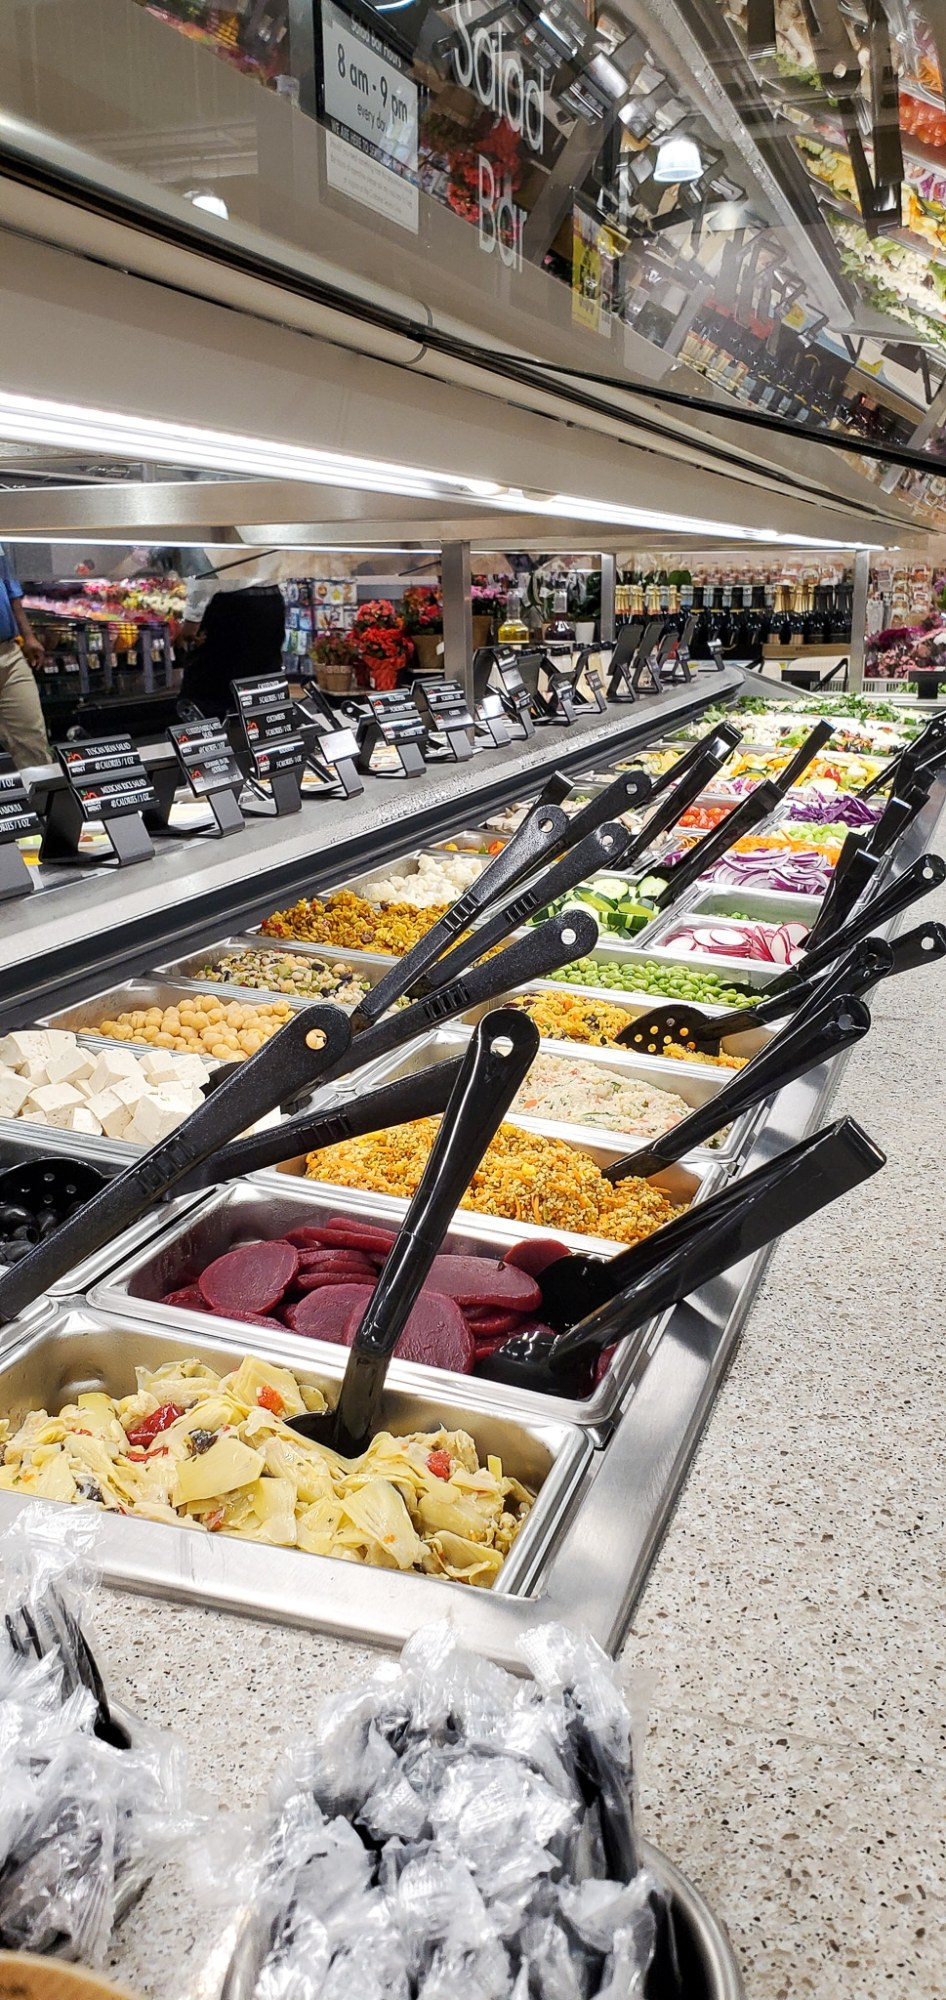 Harris Teeter Cold Bar. If your family is as busy as mine, then the Fresh Foods Market is a great place for you to grab freshly made meals and snacks. There is something for the whole family in this section, everything from Store-made Pizza to hand-rolled sushi.